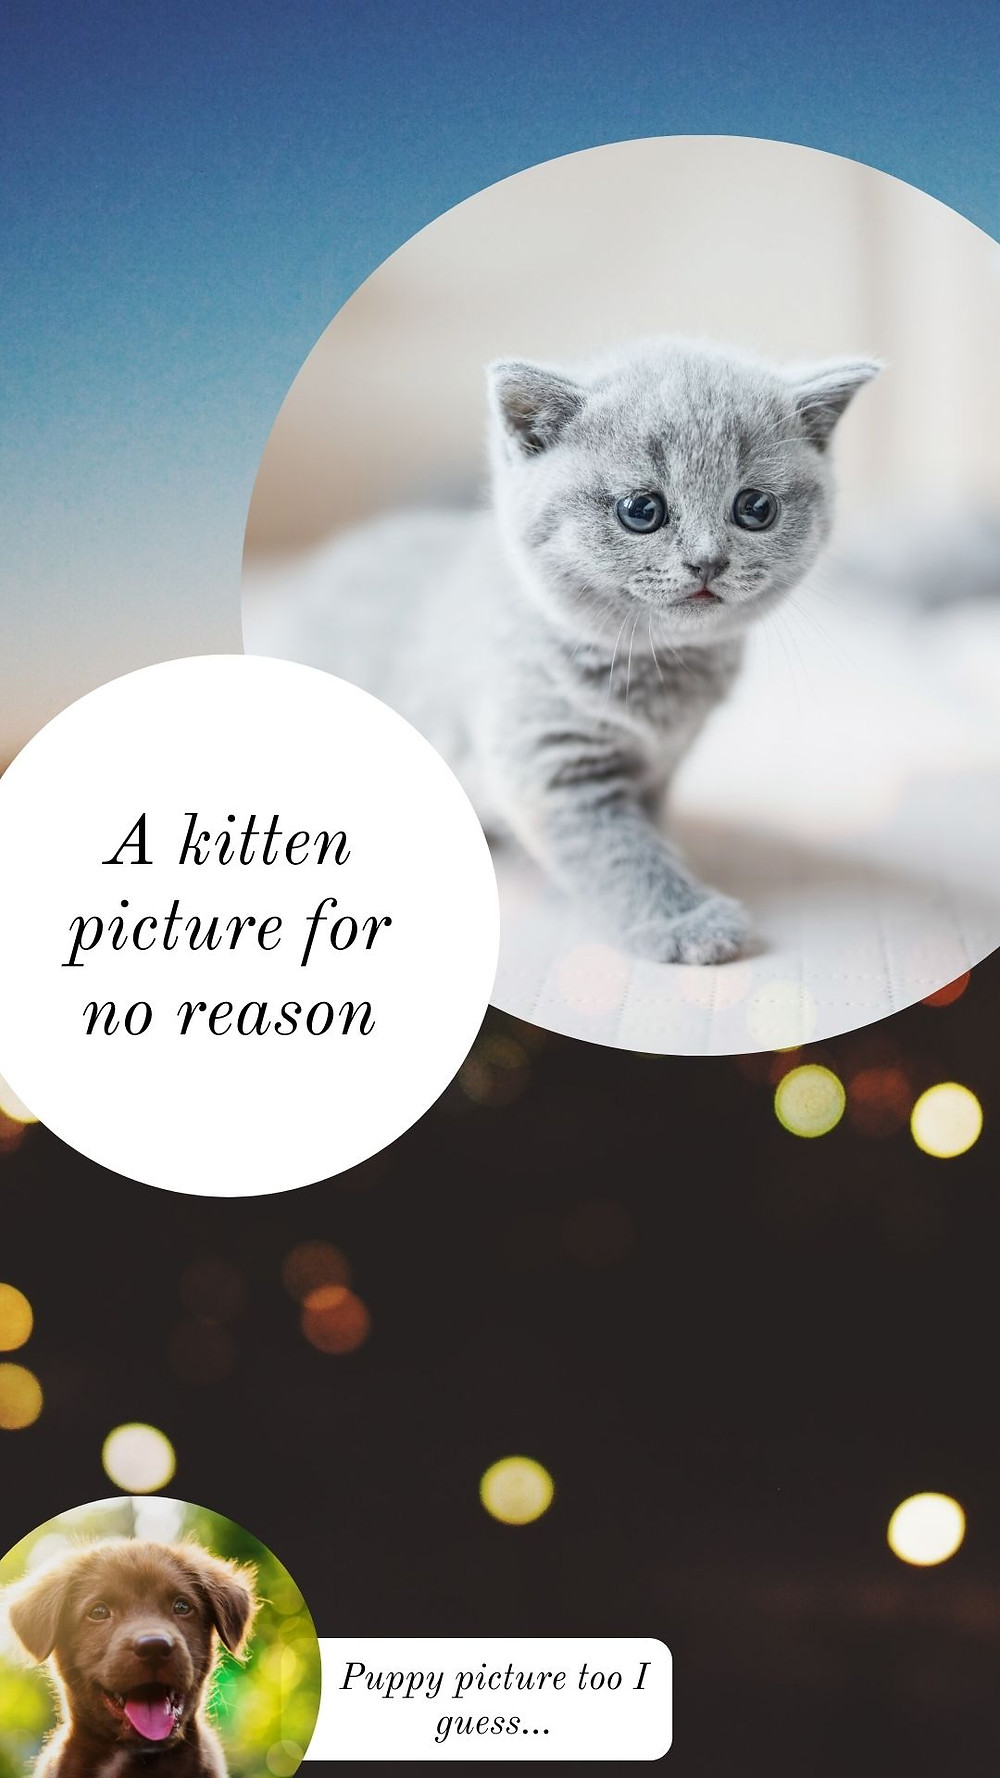 Silly infographic showing a kitten and a puppy